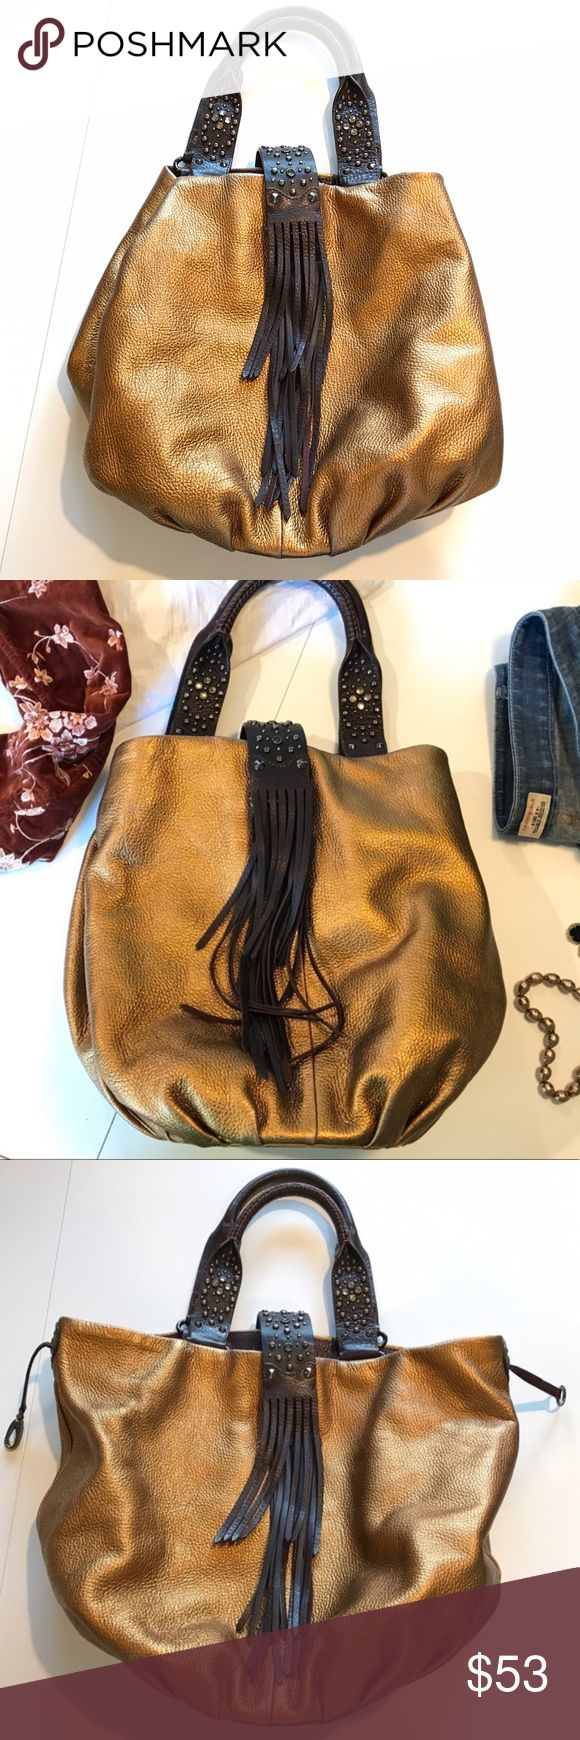 SALE ❗️Cole Haan G Series Large hobo Leather bag Limited edition G series Leather bag, metallic bronze color, bohemian chick style with dangling jewels charms. Some of the metallic color is rubbed off, other than that, this purse is in great condition. No stains, no scratches, all zippers work! Join me on @poshmarkapp, follow me @tupirix Sign up with UCDHC to get $5 off your first order. https://bnc.lt/focc/oTzFSGls7D Cole Haan Bags Hobos